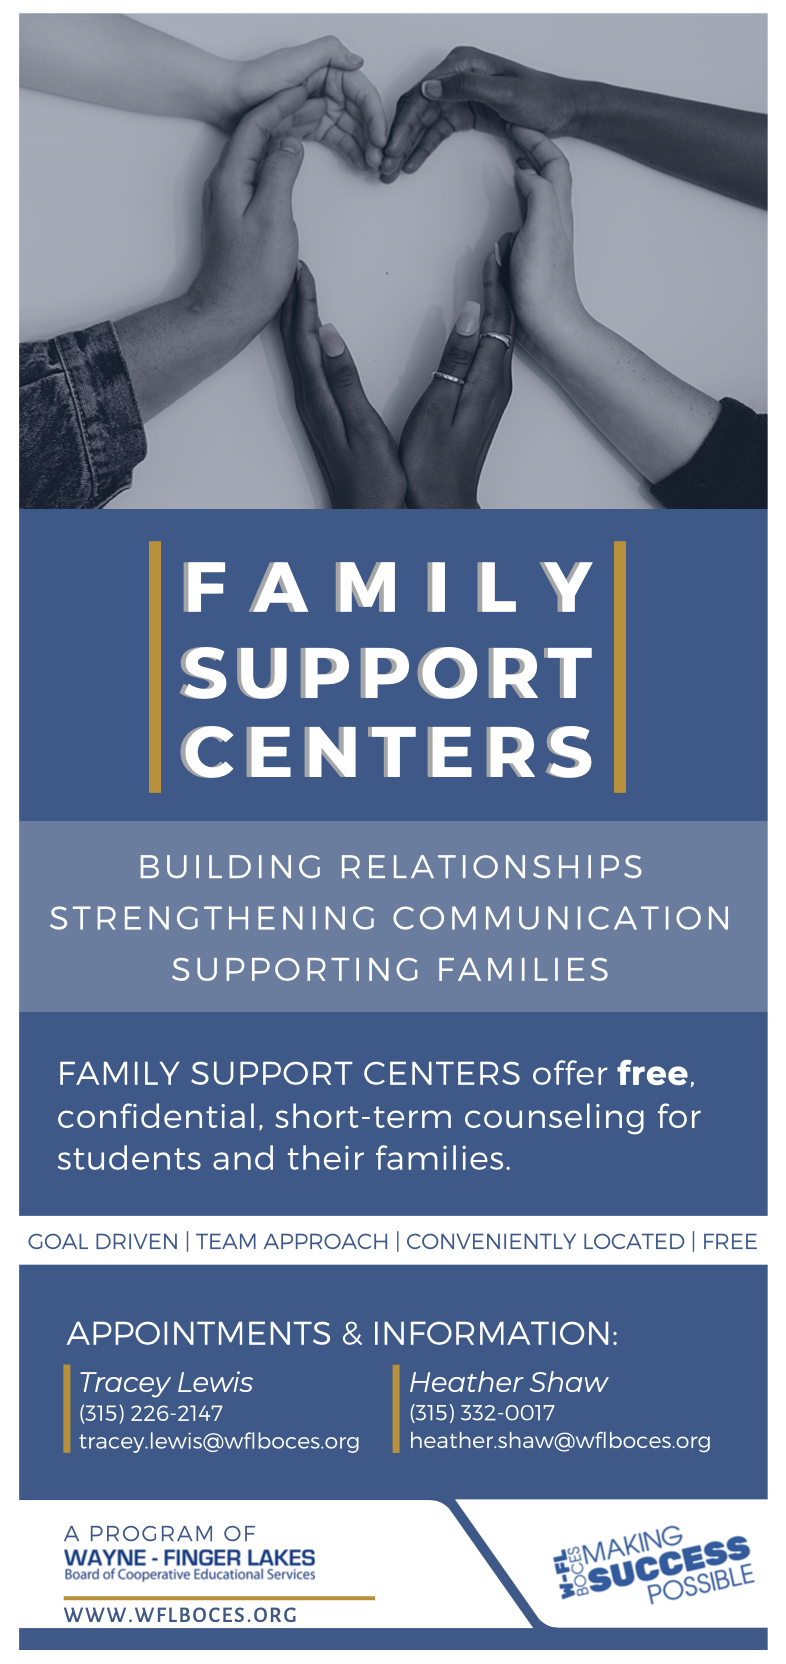 Family Support Centers brochure page one